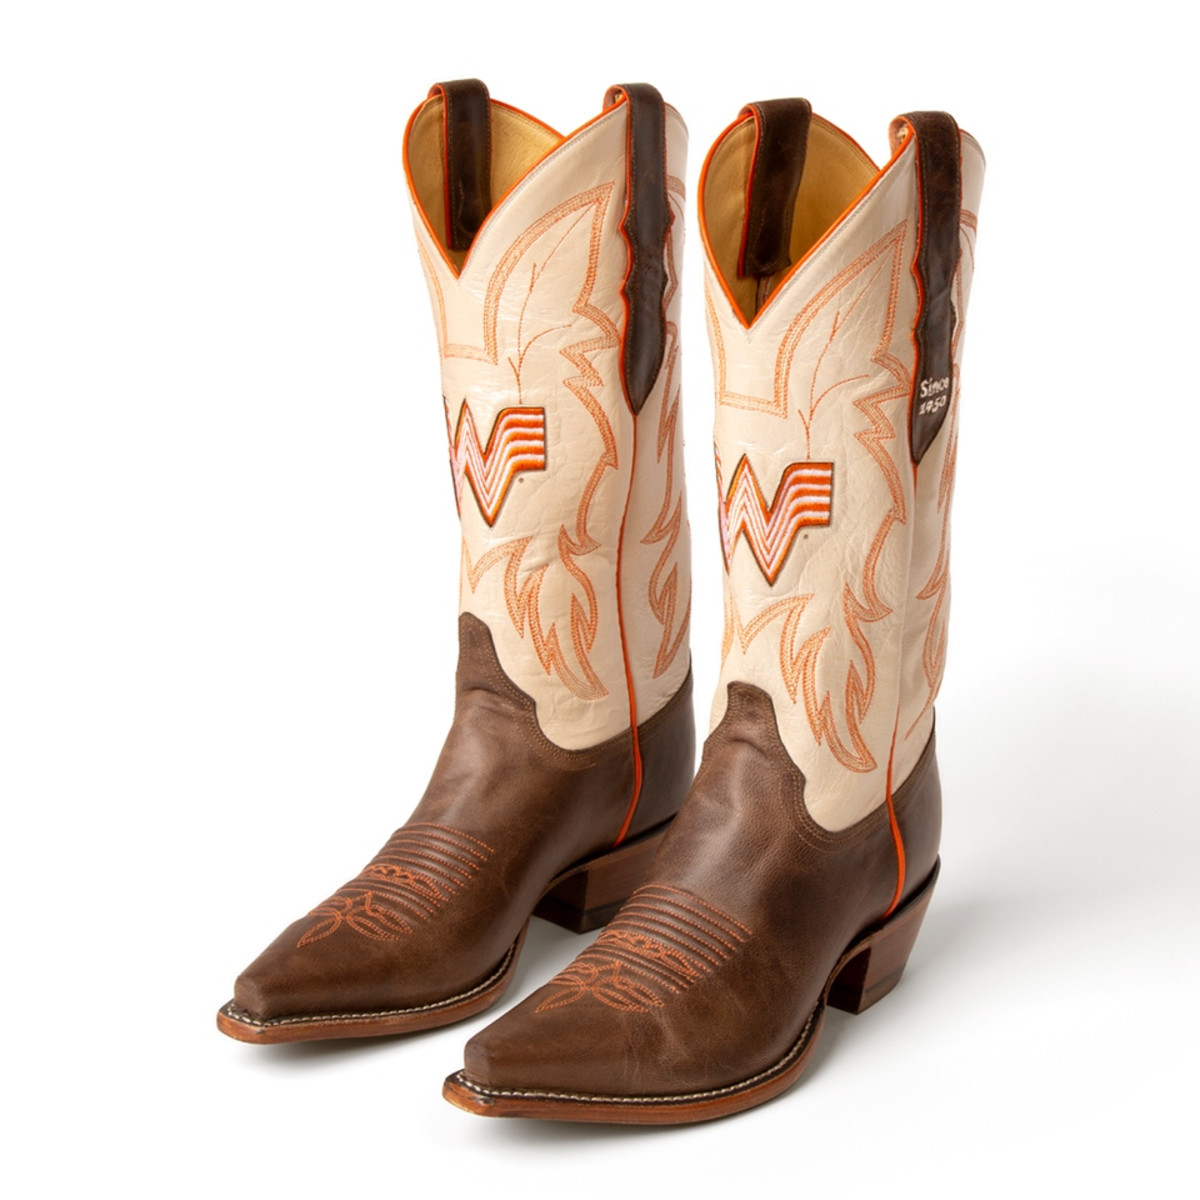 Whataburger boots women's